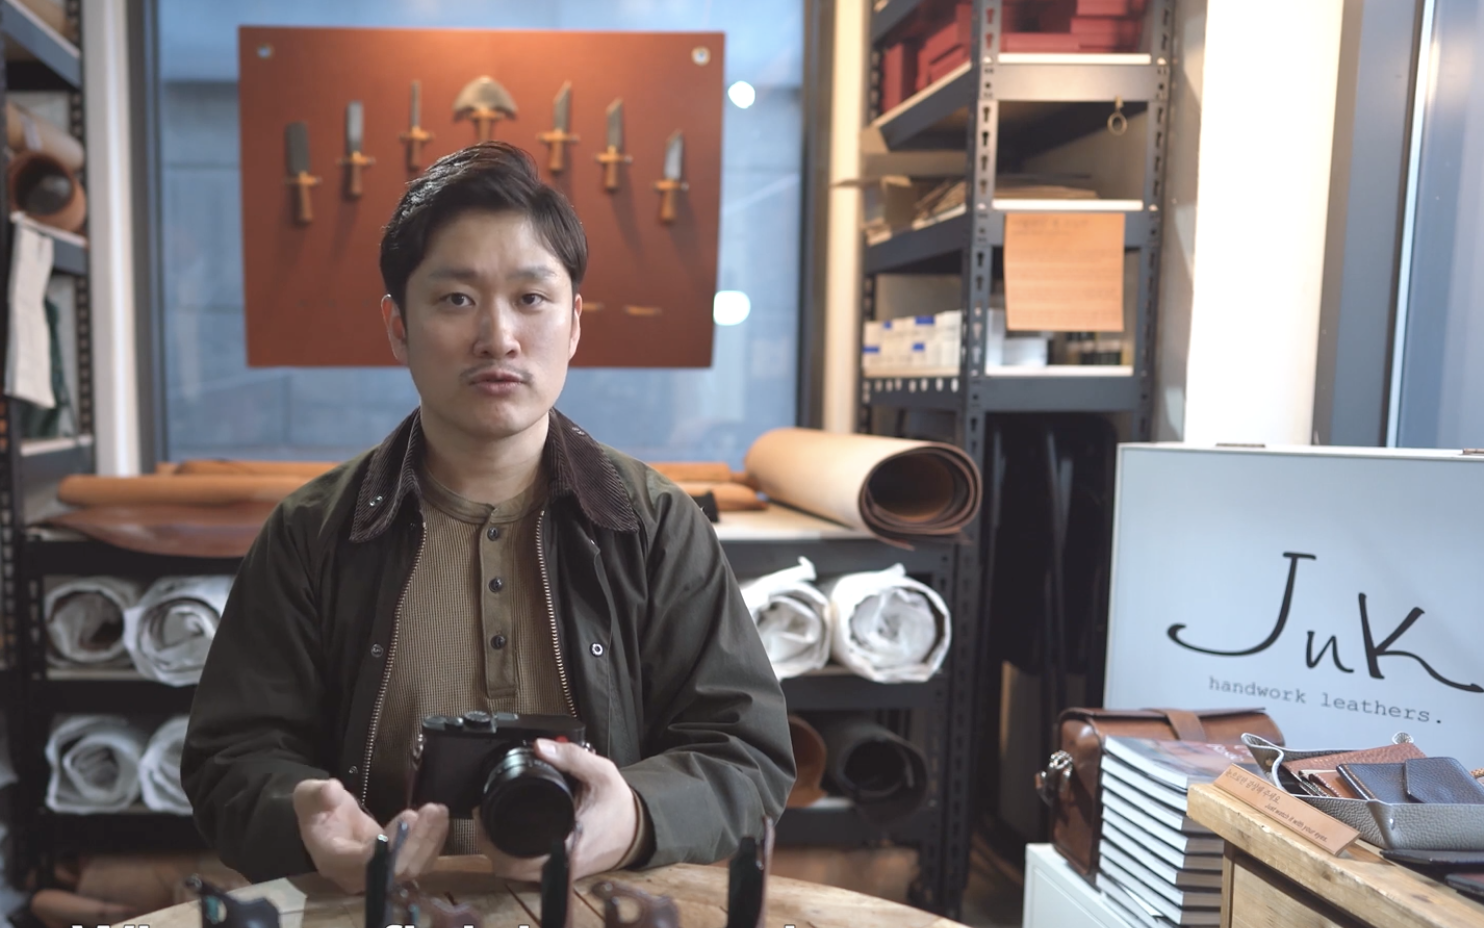 Sejun Kim, craftsman and Leica enthusiast, demonstrates the options for the new Leica Q2 half-case